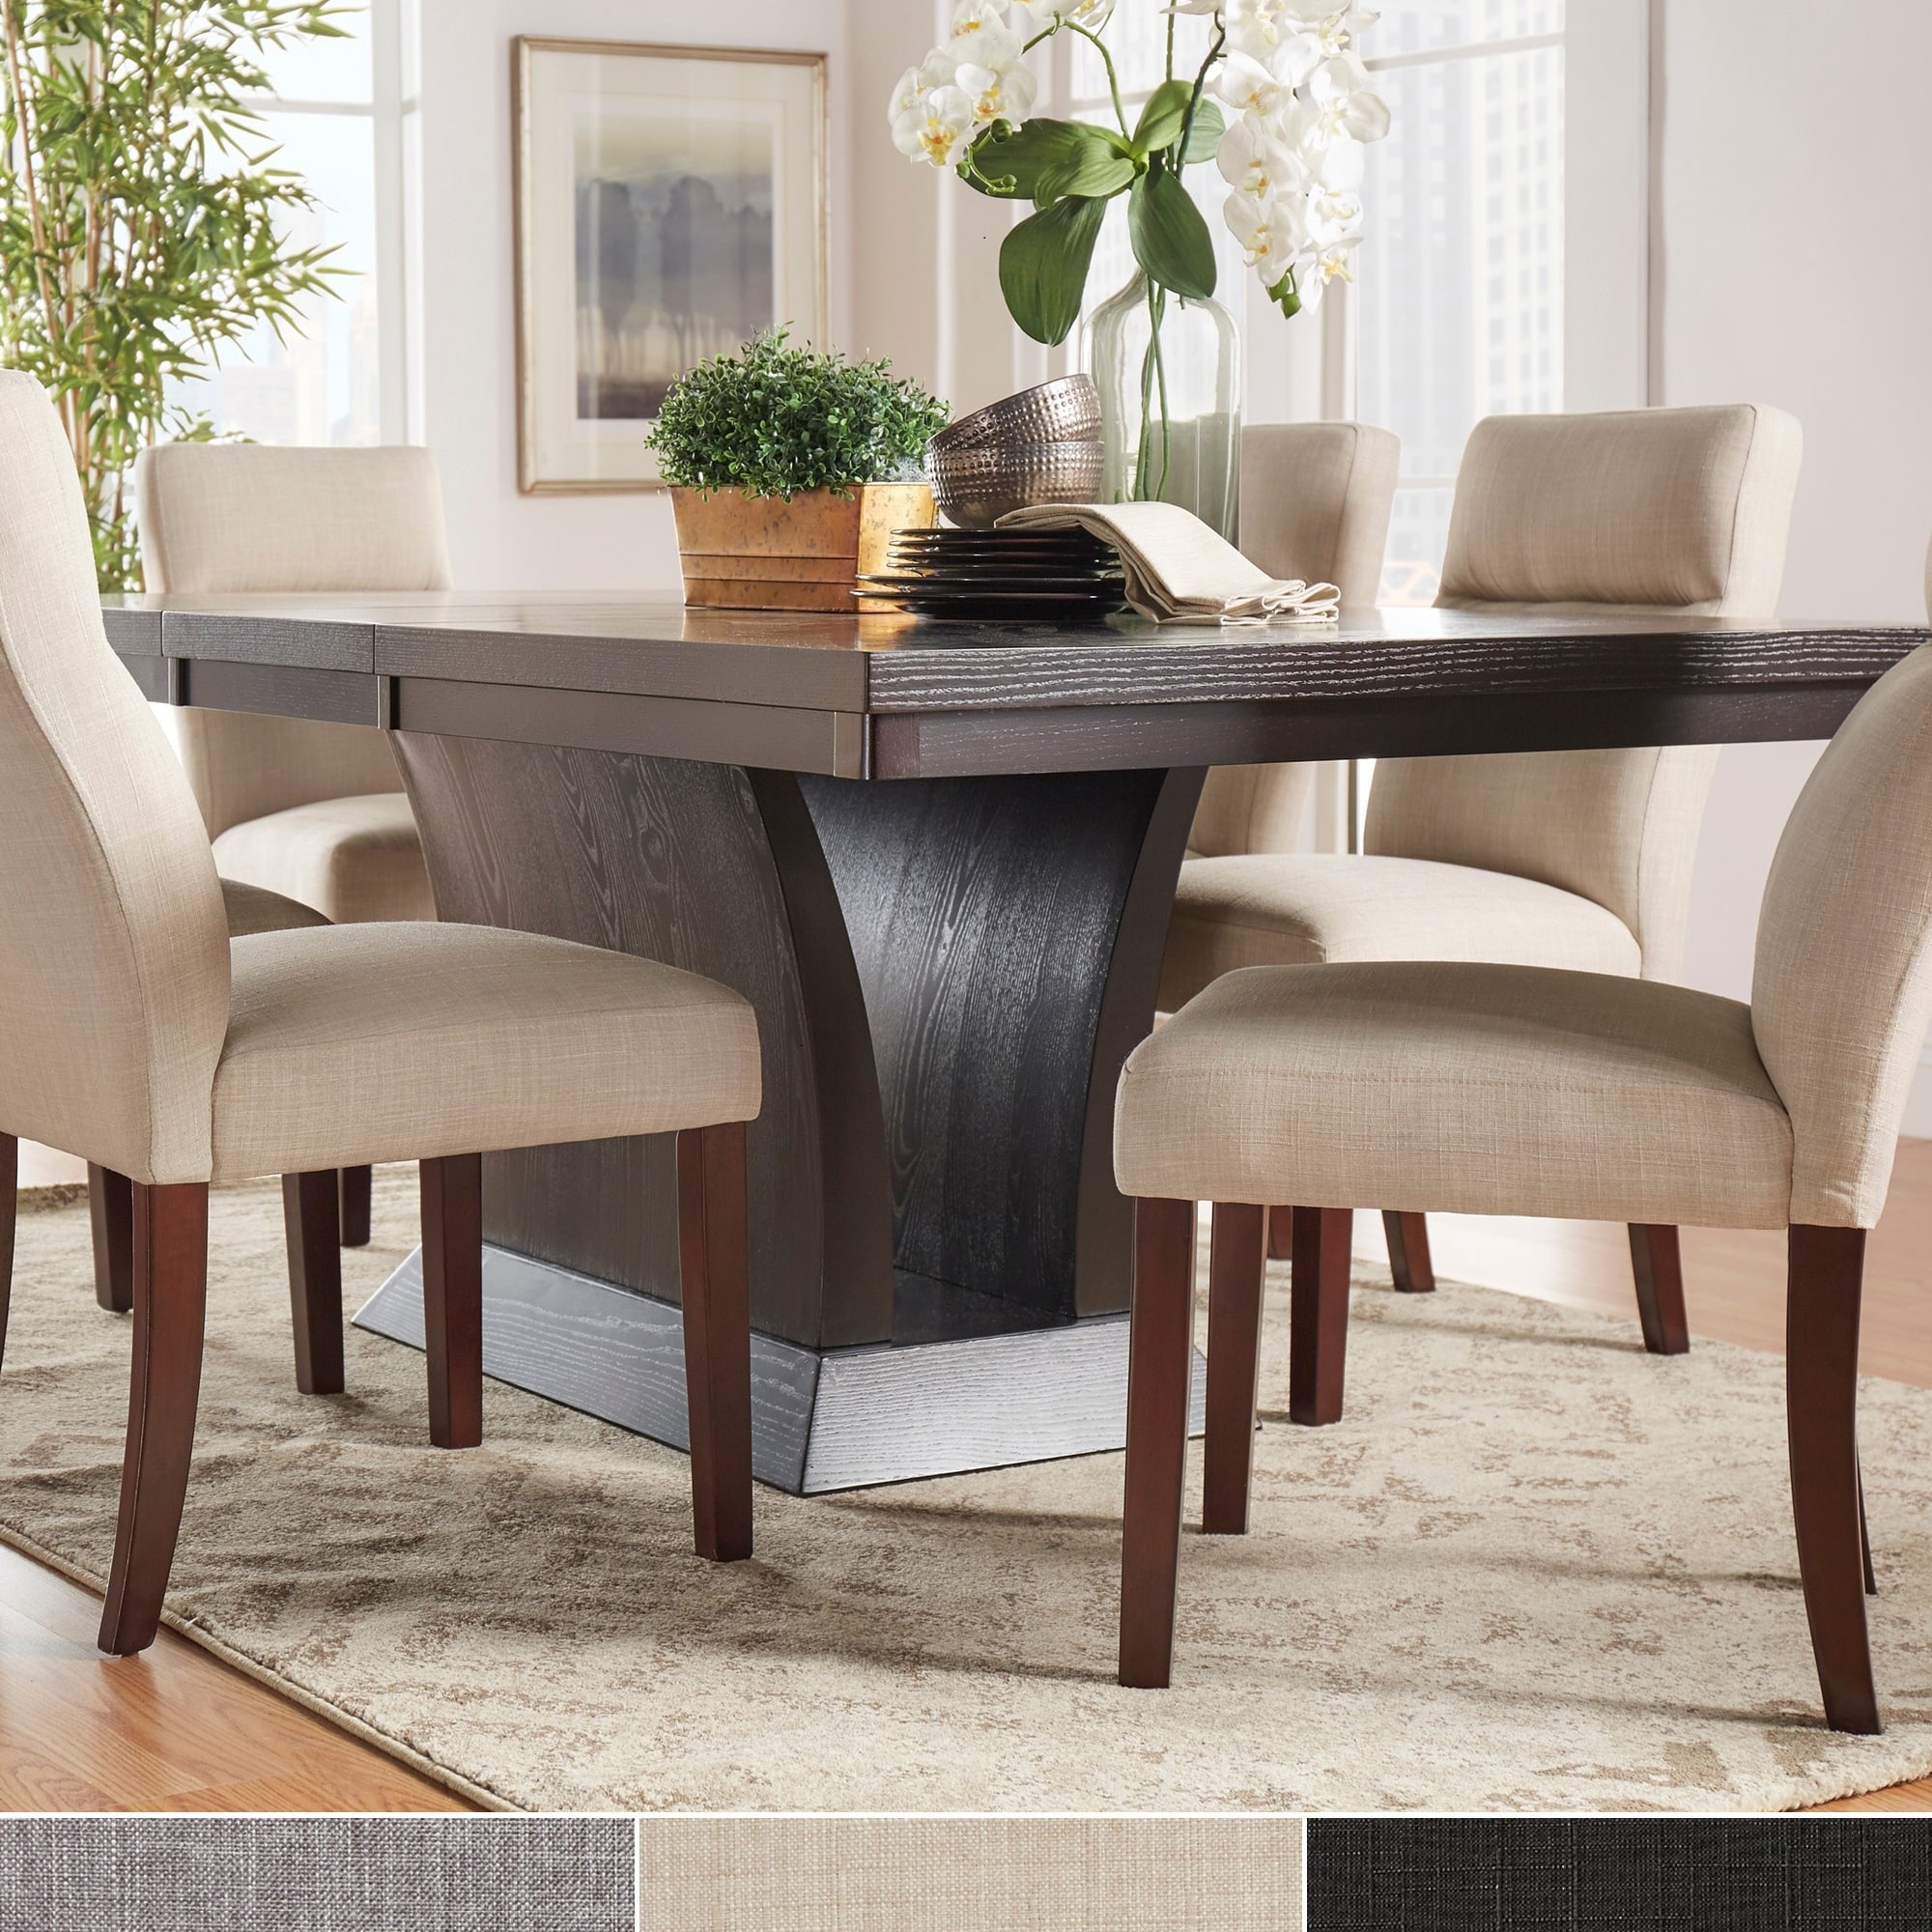 sears dining room furniture sets trend home design and decor dining room sets from sears com